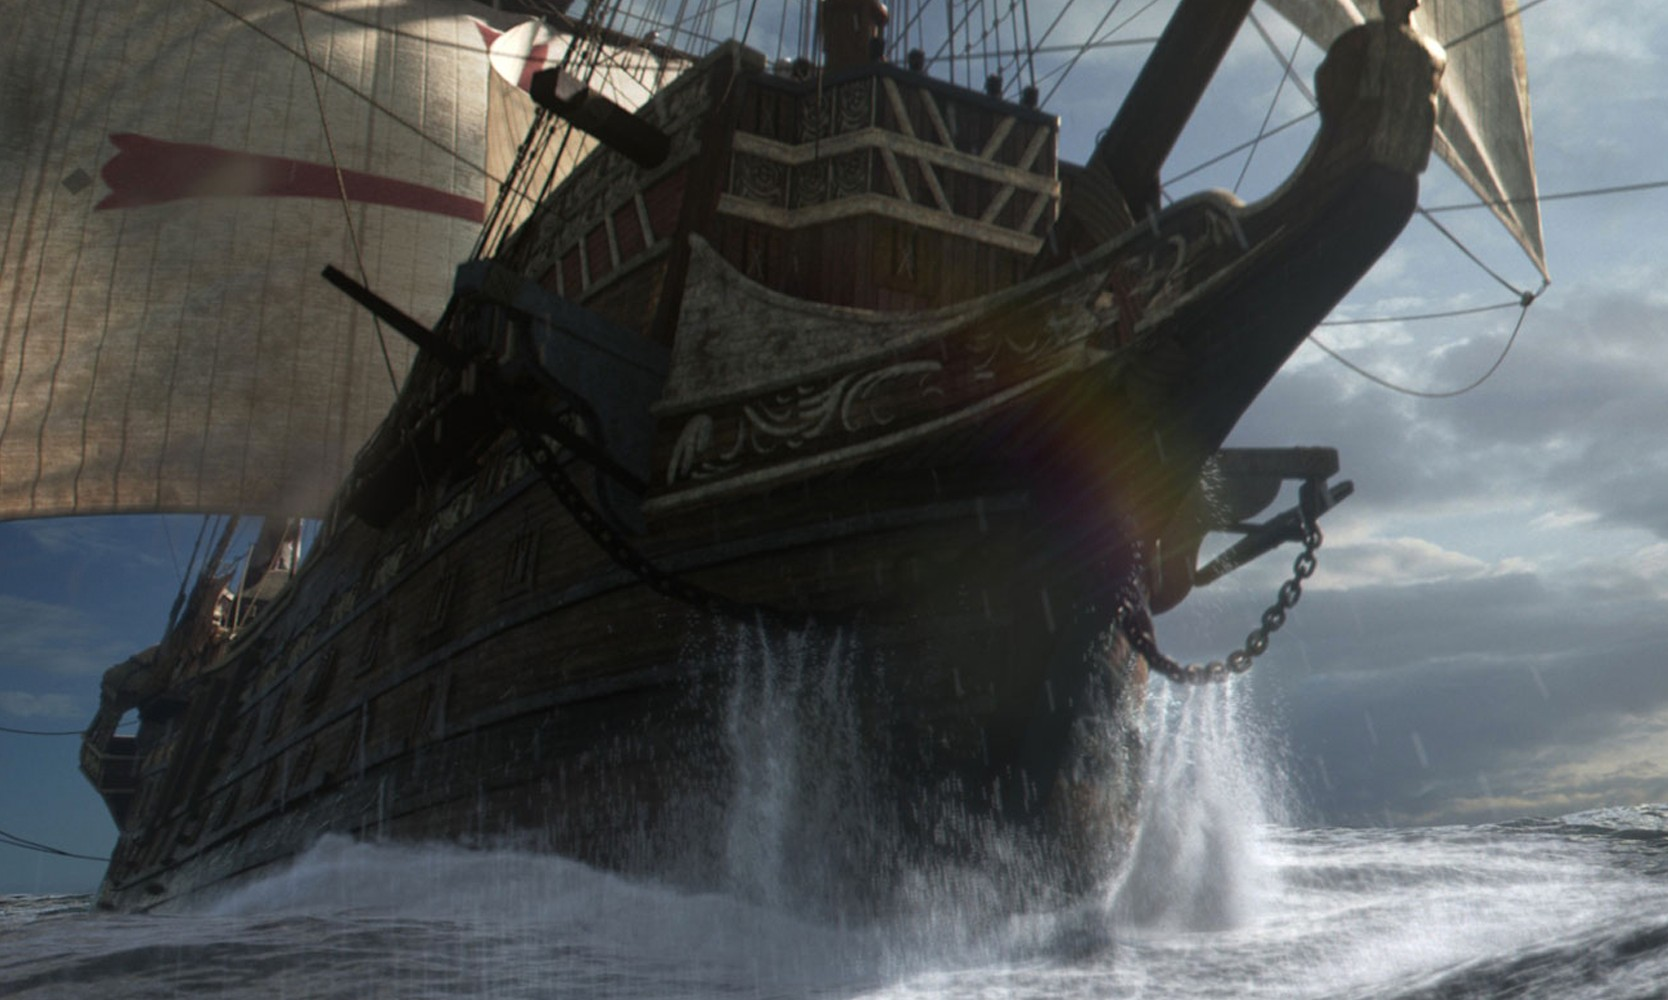 Black Sails – Season 2